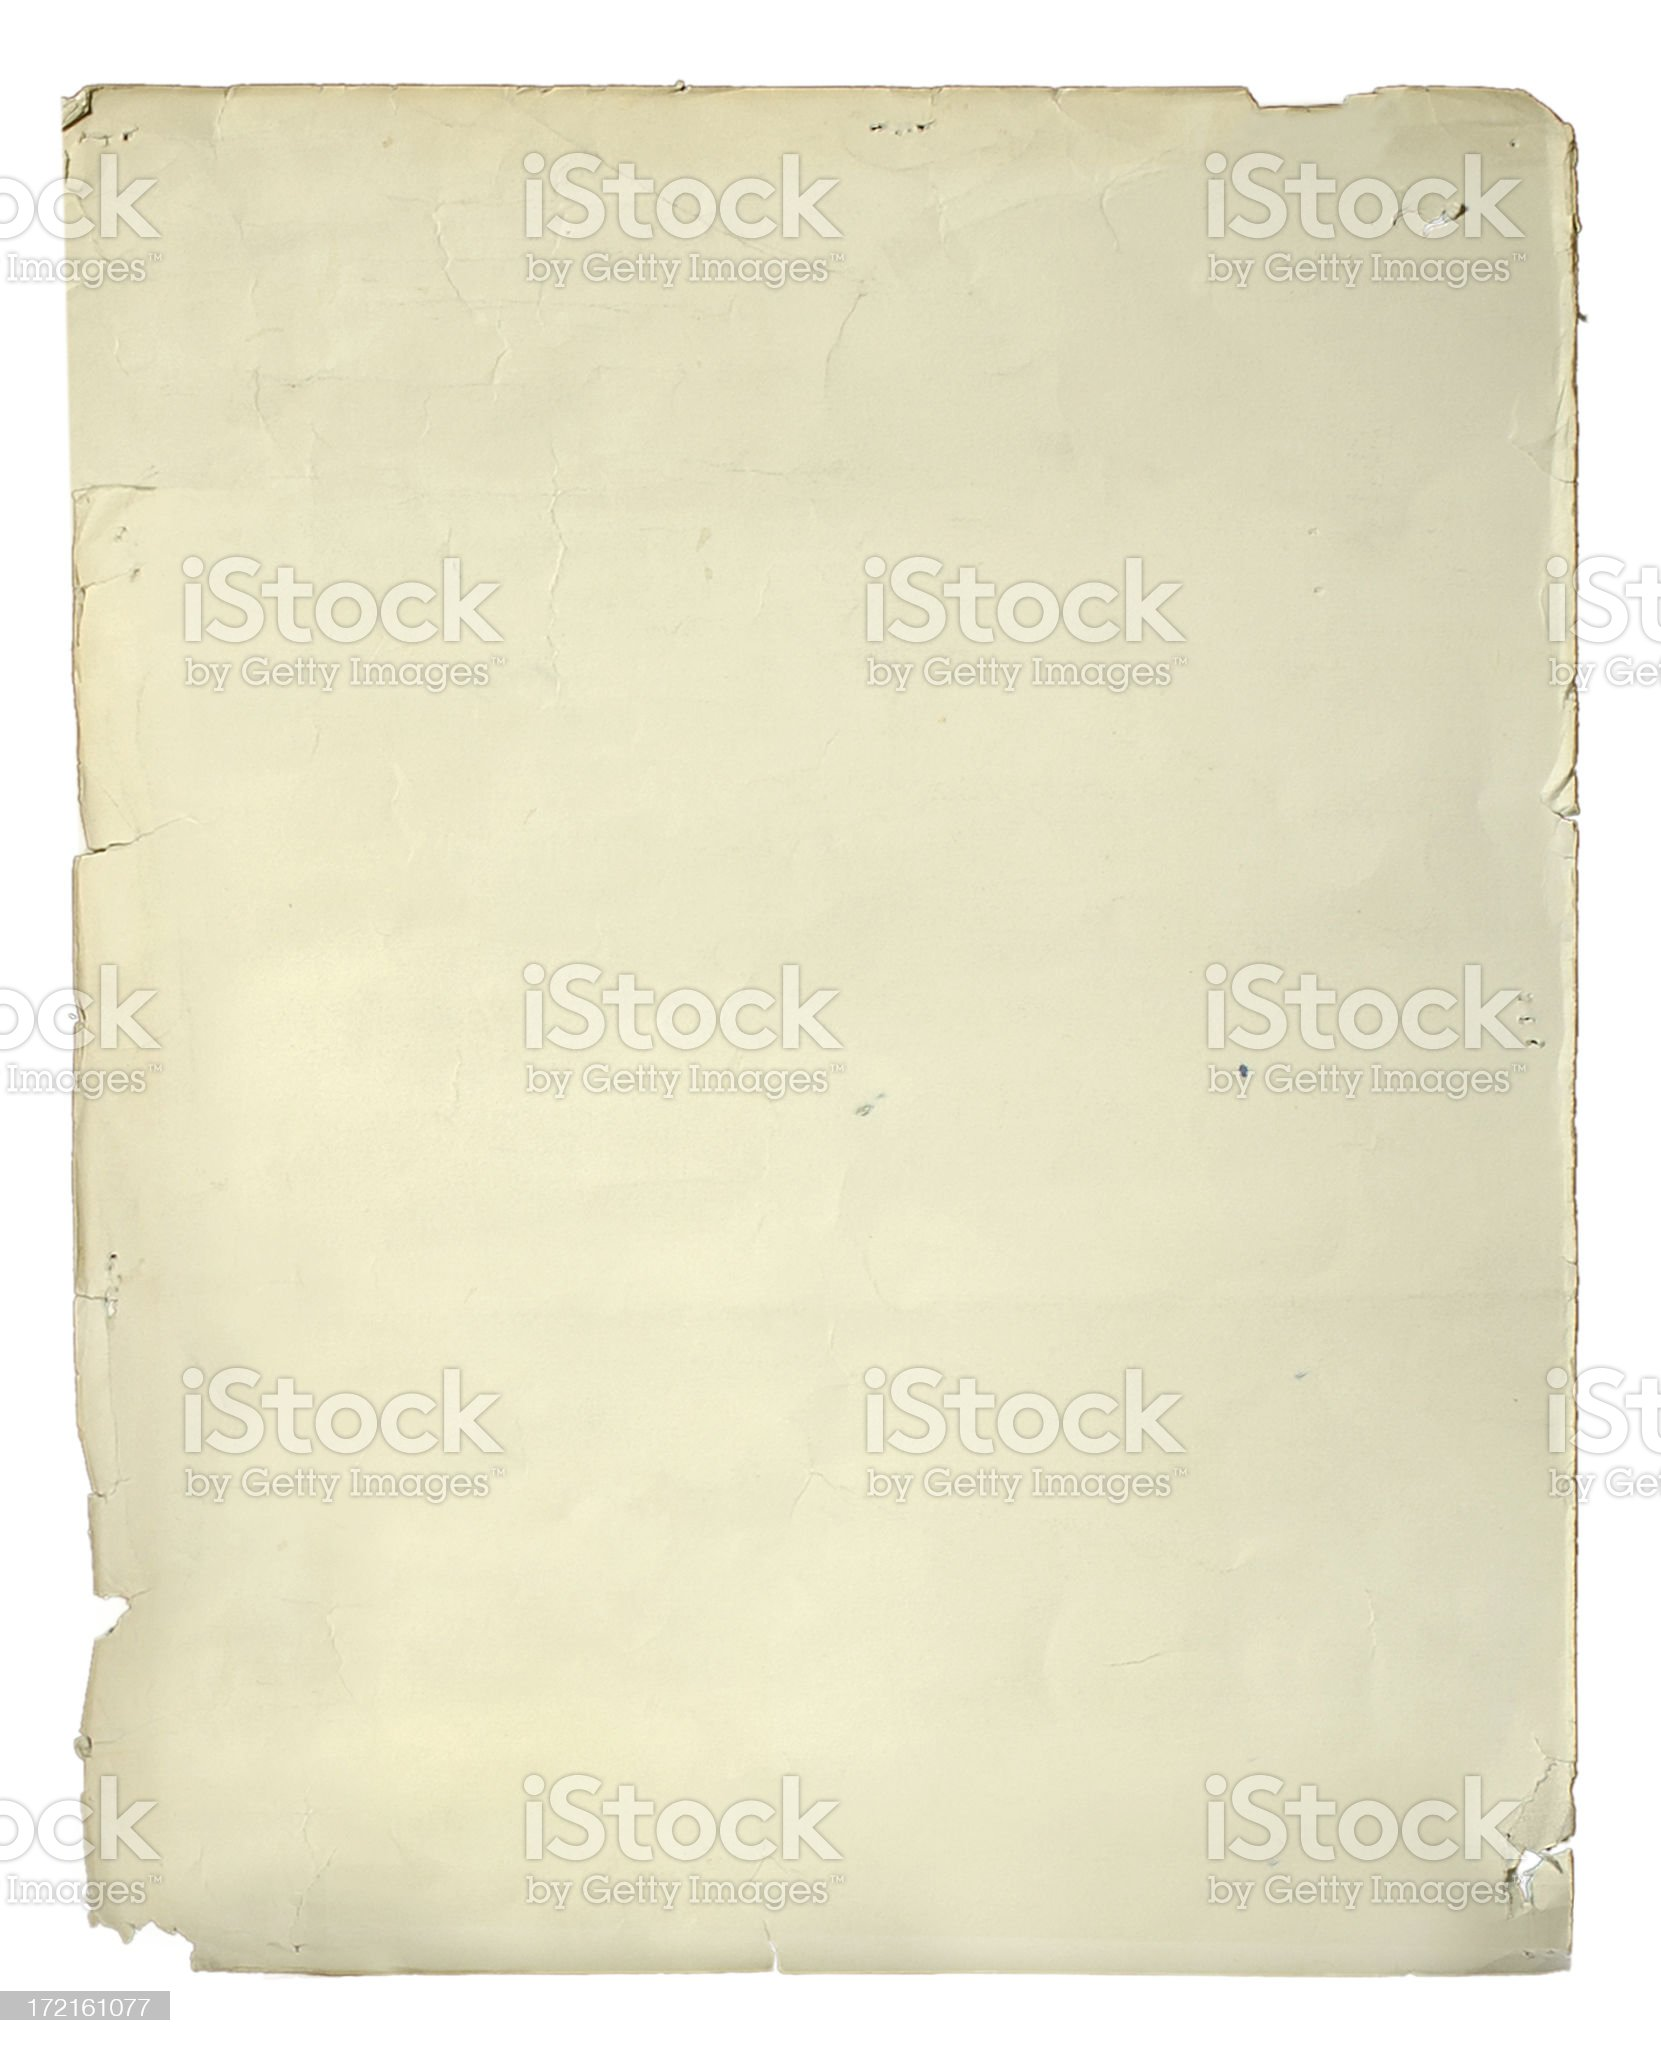 old poster paper royalty-free stock photo